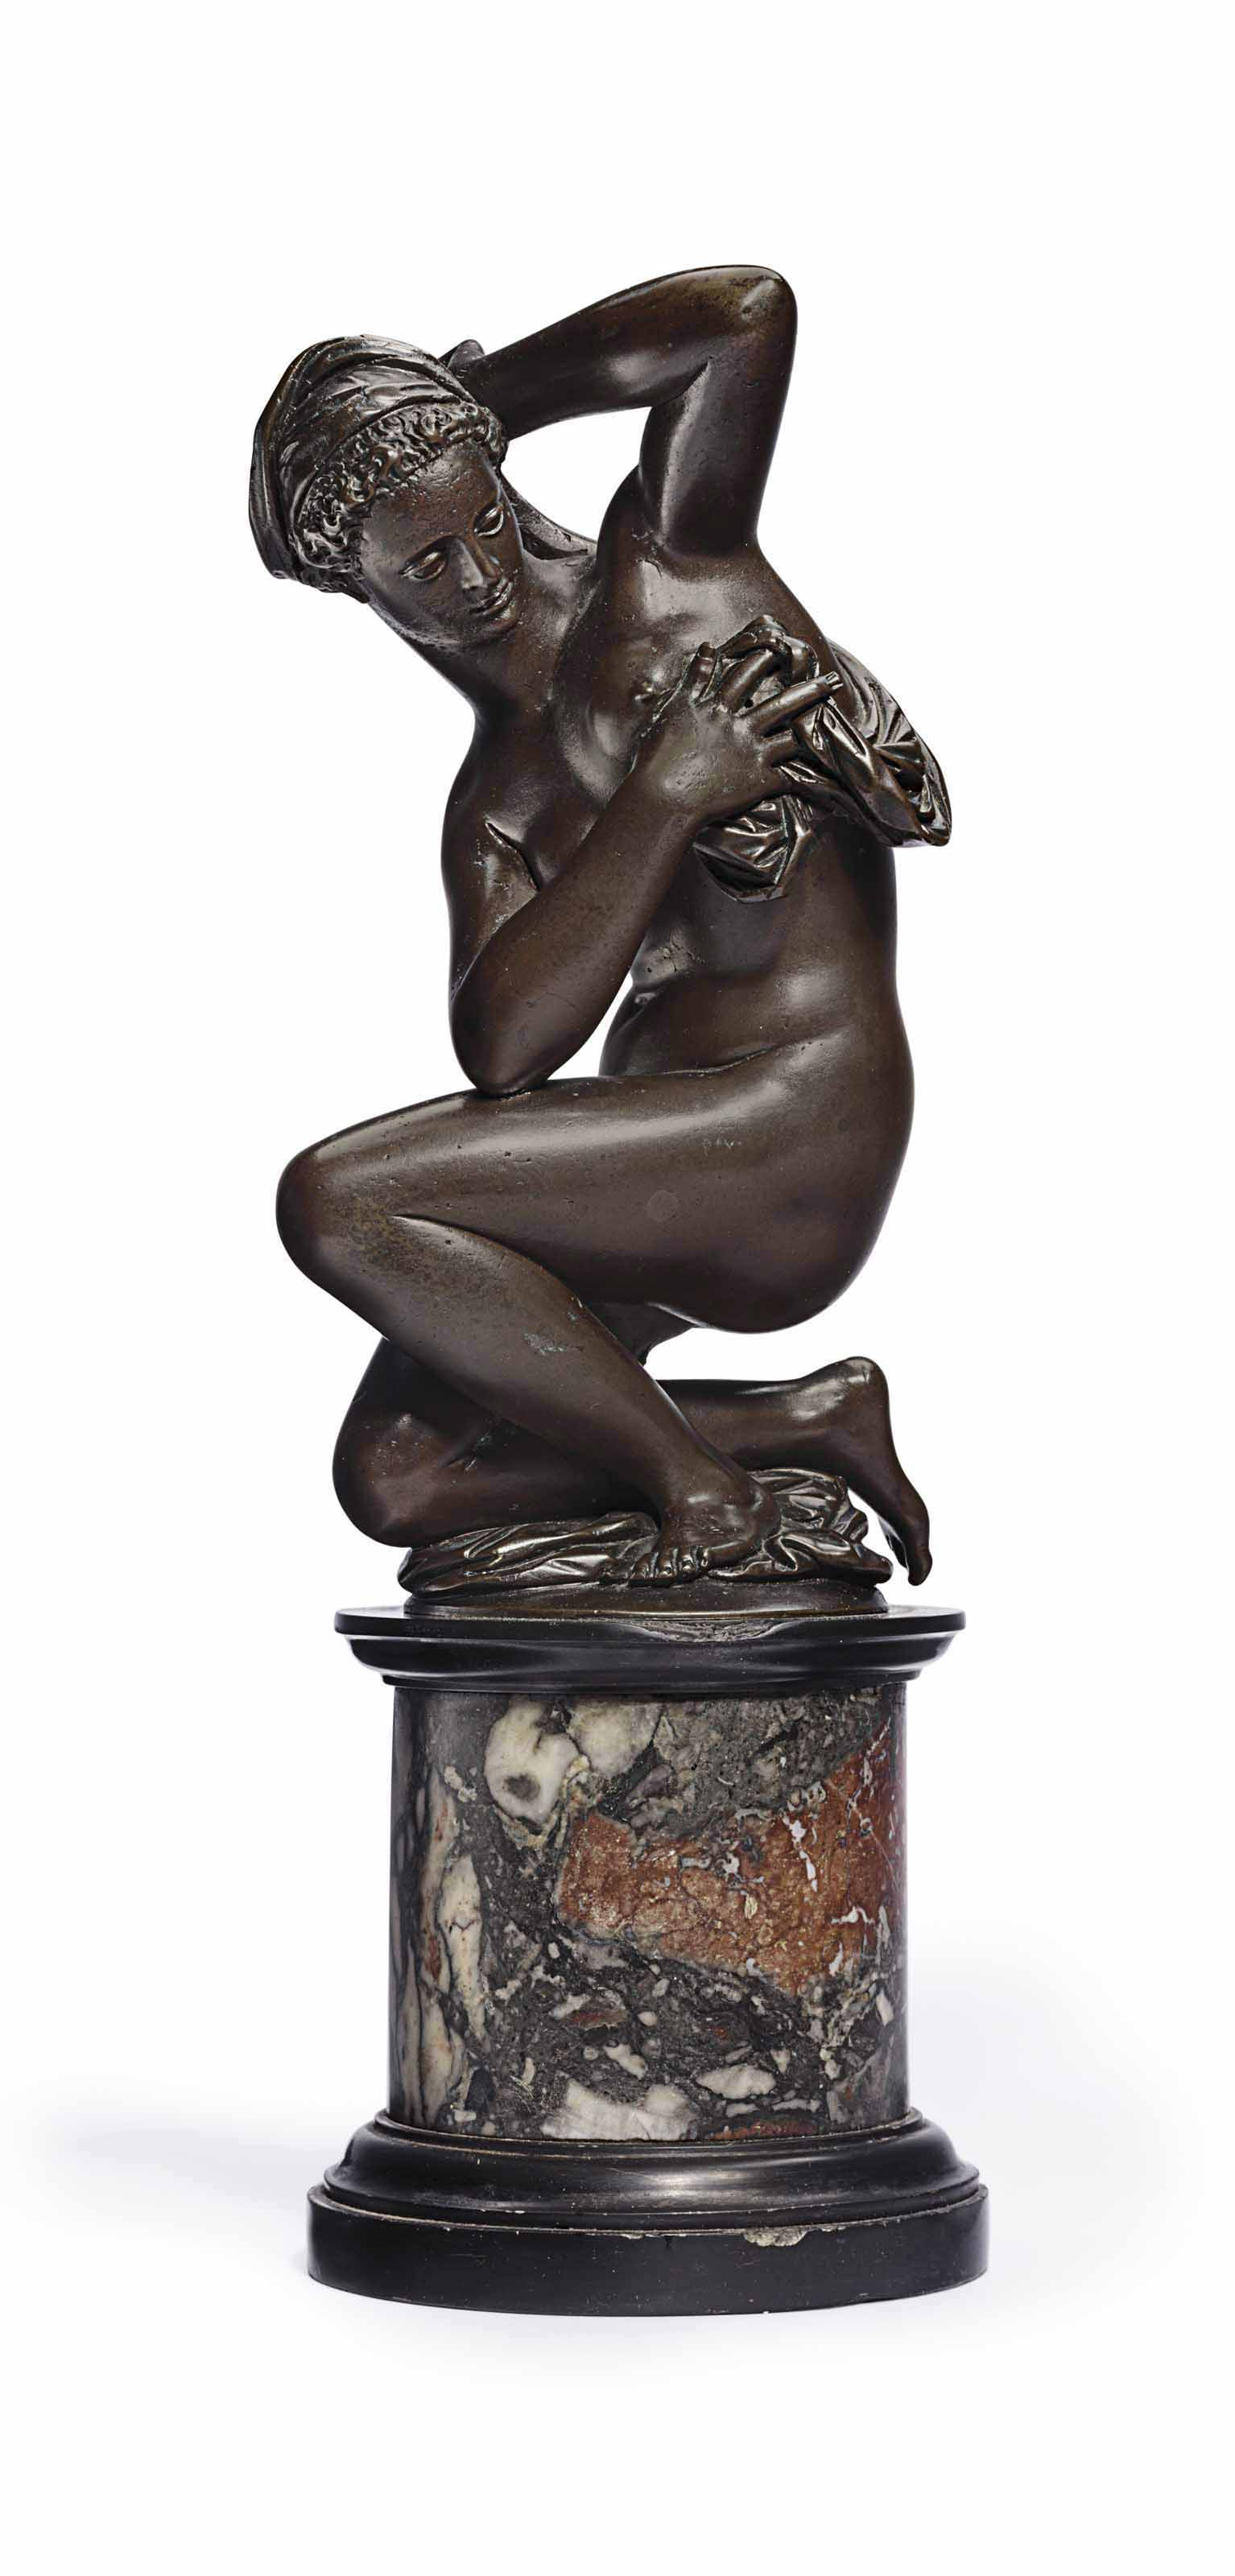 A BRONZE FIGURE OF A WOMAN BATHING